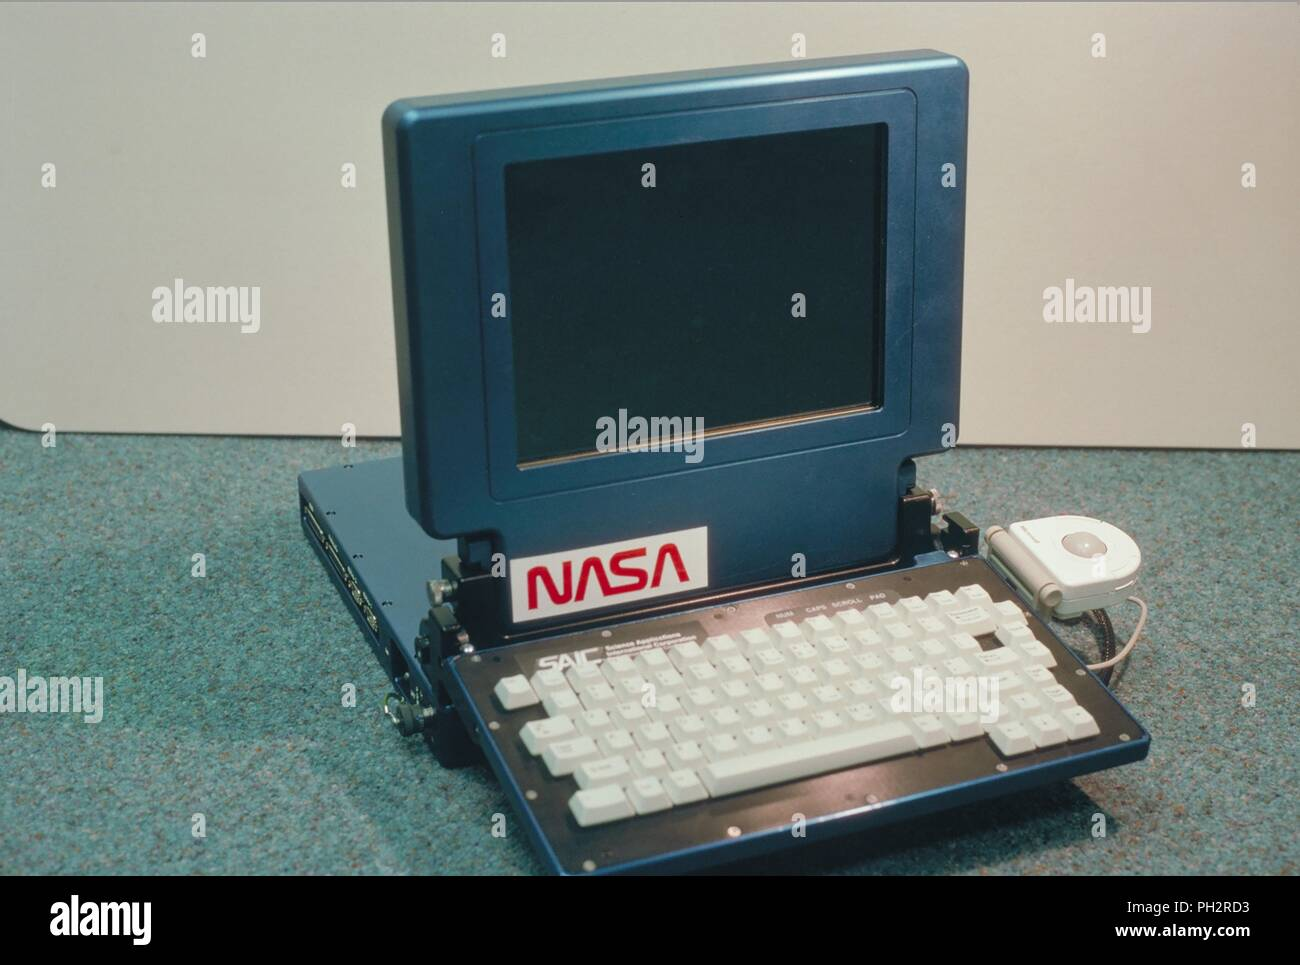 Color Photograph Of A Space Station Data Systems Advance Portable